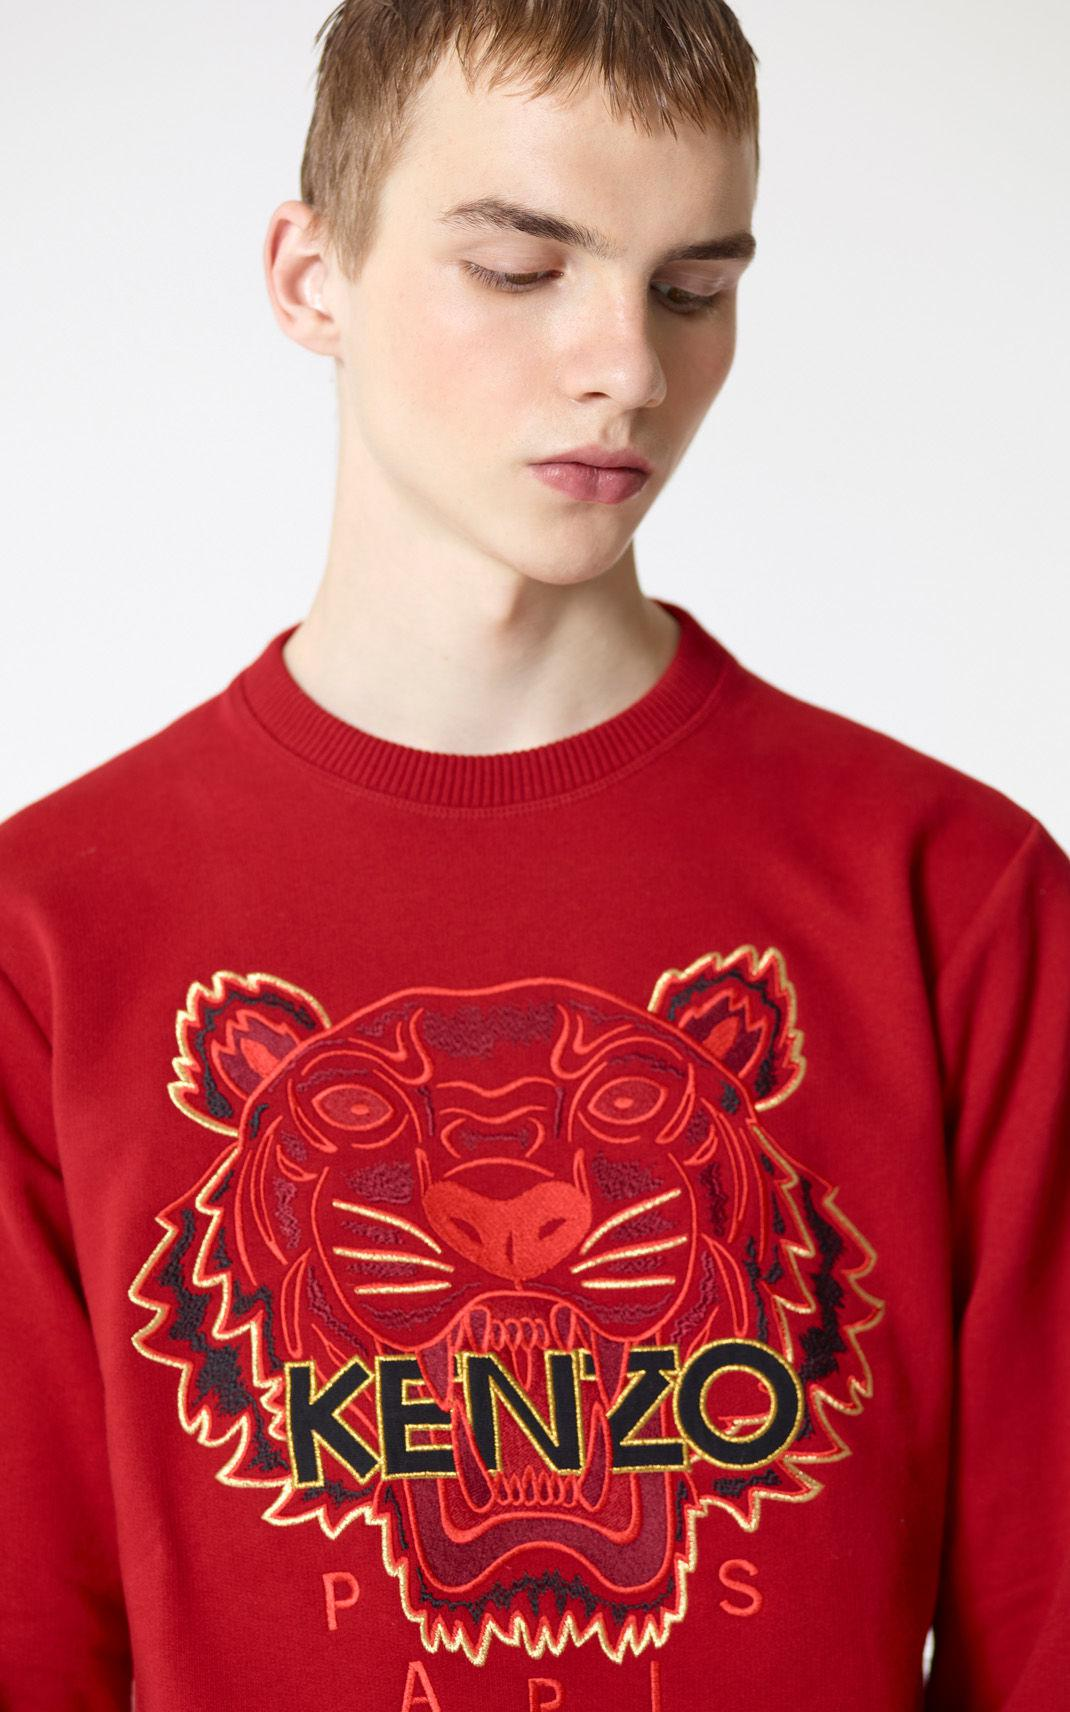 f5063ff6ee7 KENZO 'chinese Ny Capsule Collection' Tiger Sweatshirt in Red for ...